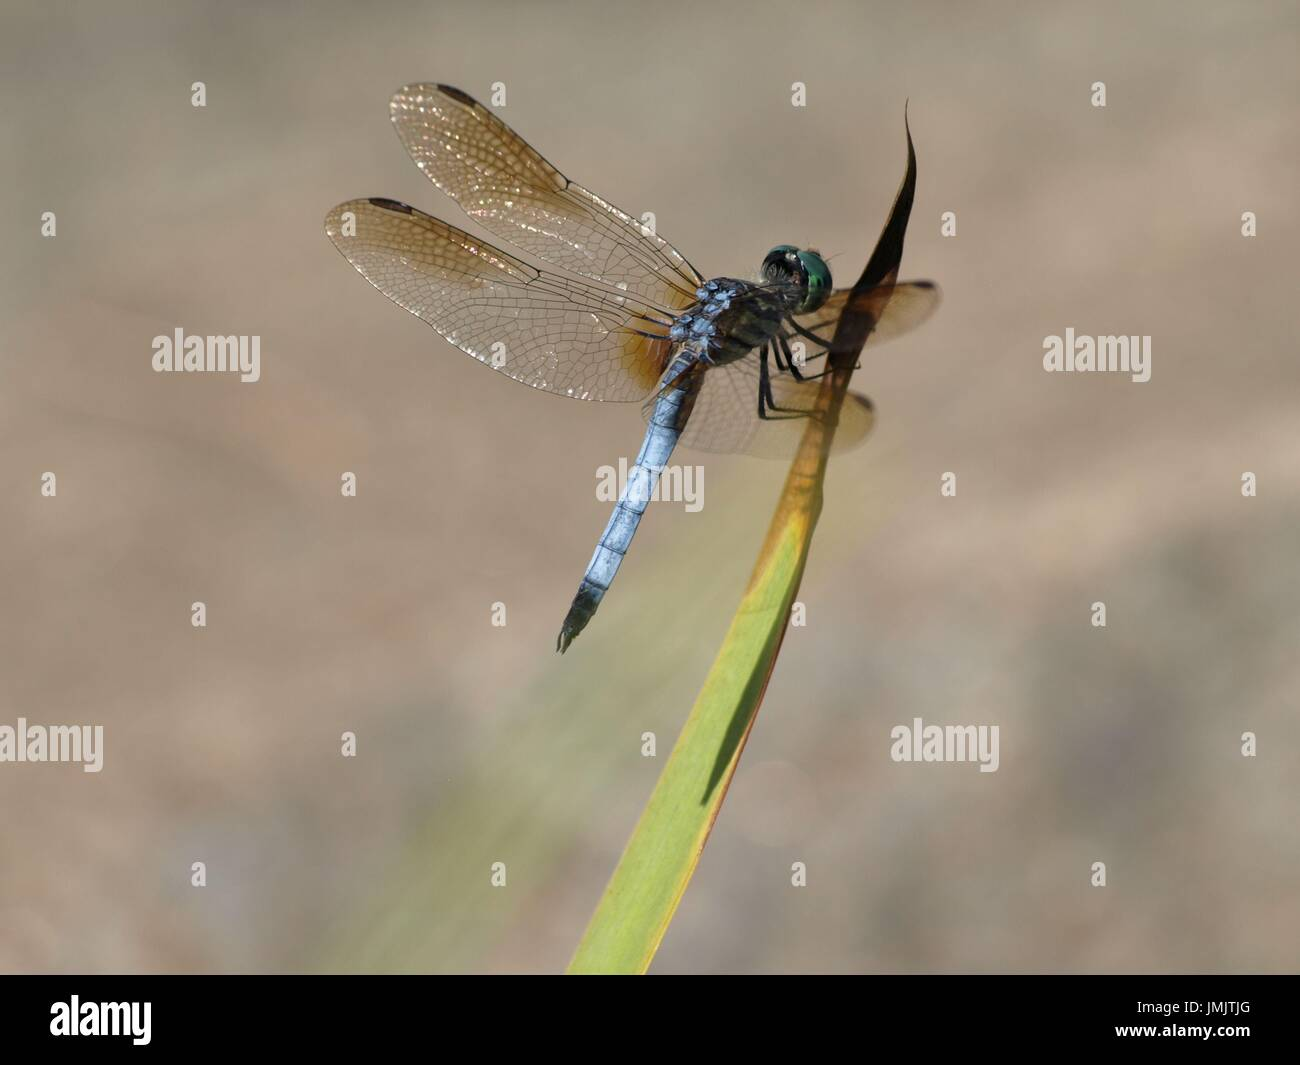 Blue Dragonfly with iridescent wings on green plant stem Stock Photo